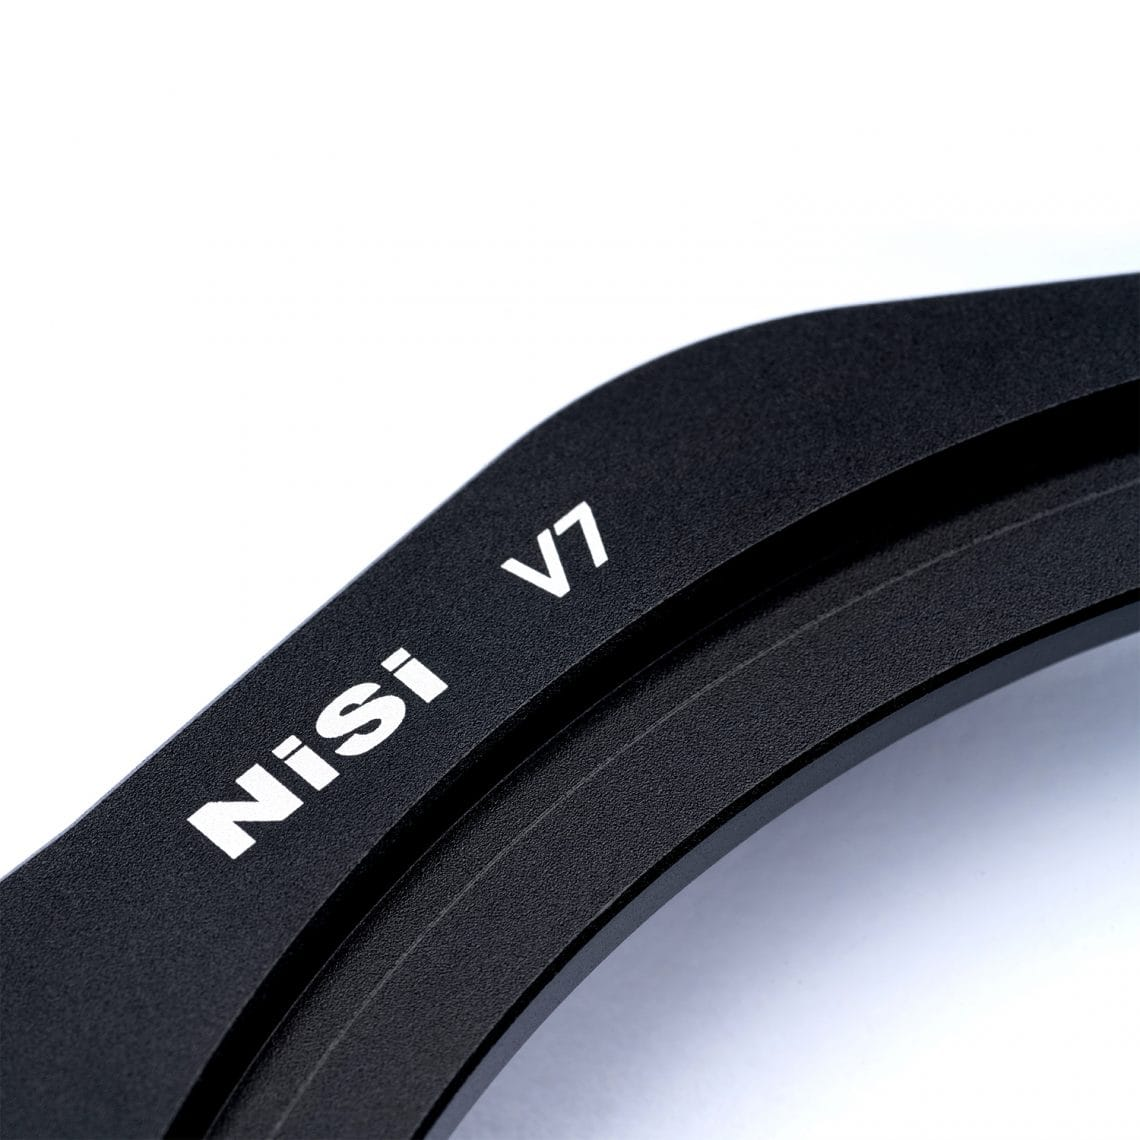 NiSi V7 with True Color NC CPL